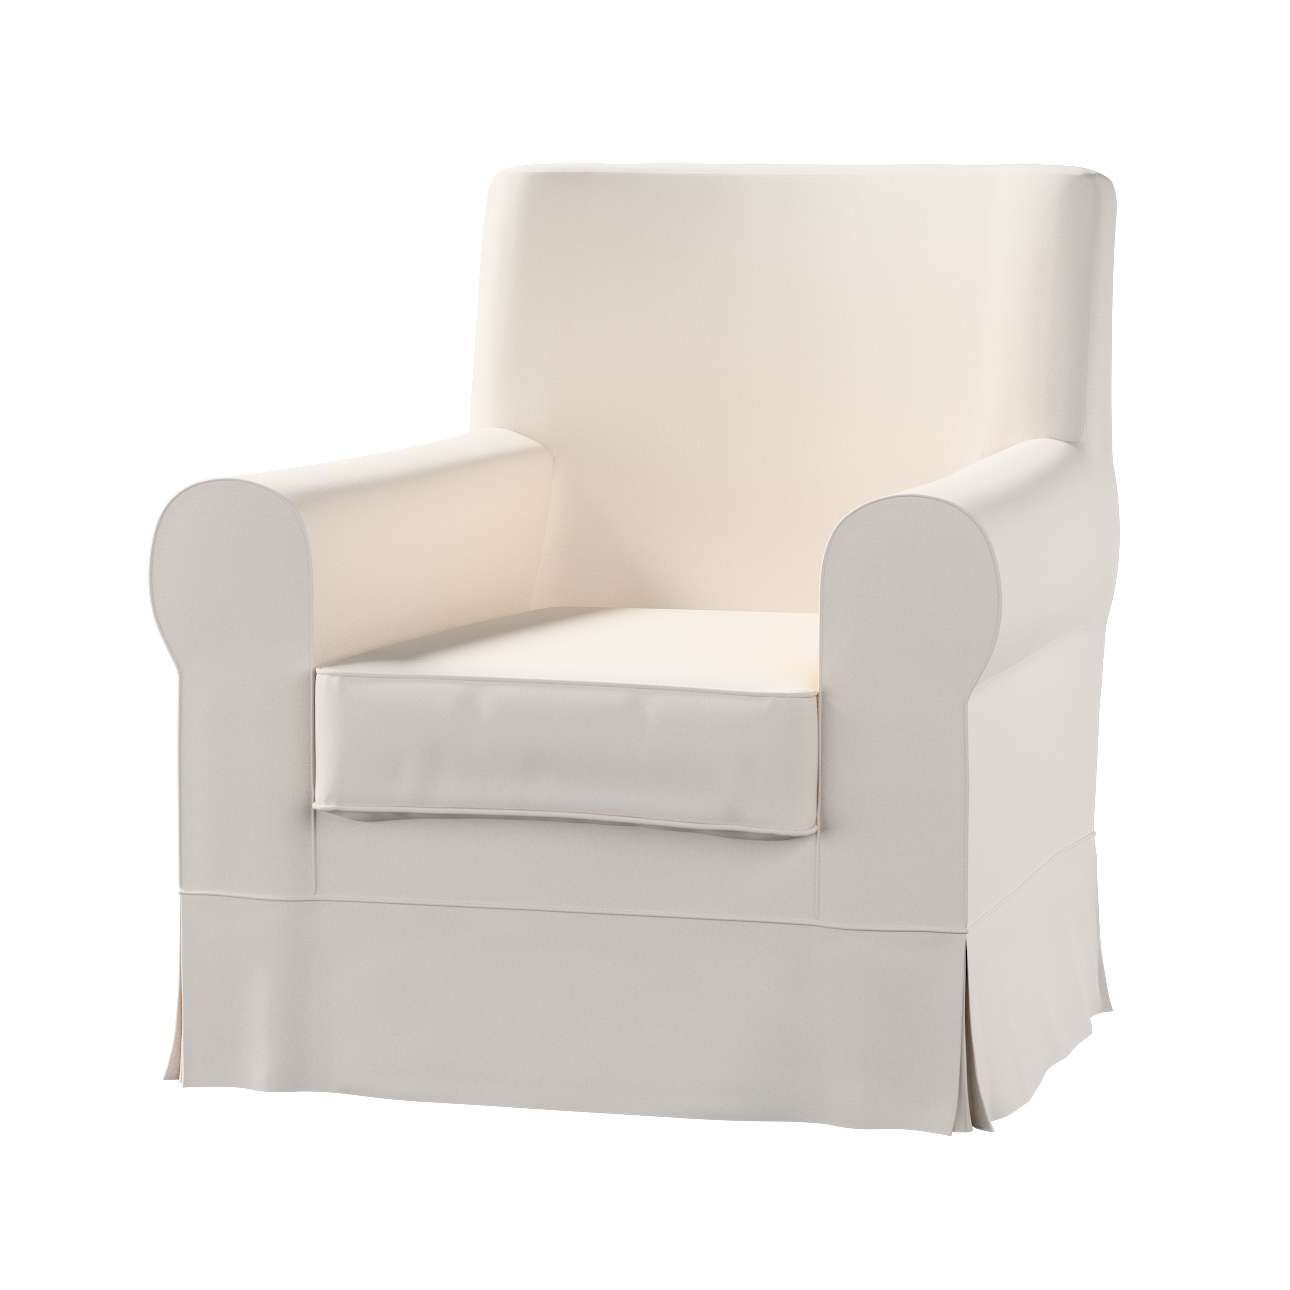 ikea jennylund chair covers uk plus size camping ektorp sofa and furniture - dekoria.co.uk